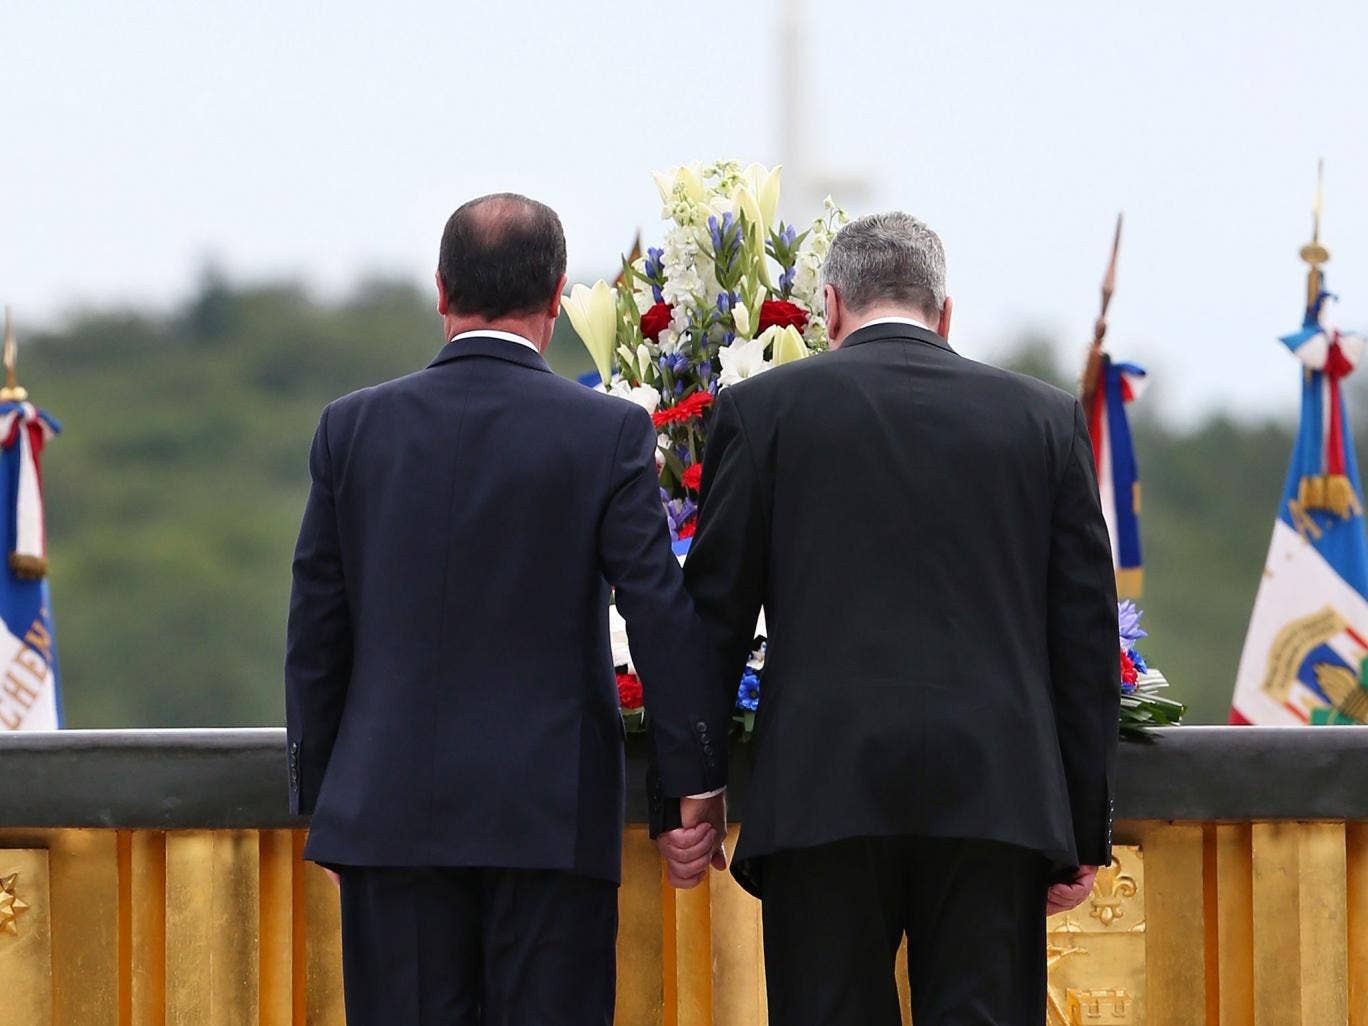 France's President François Hollande, left, and German President Joachim Gauck pay their respects at the National Monument in Wattwiller, eastern France